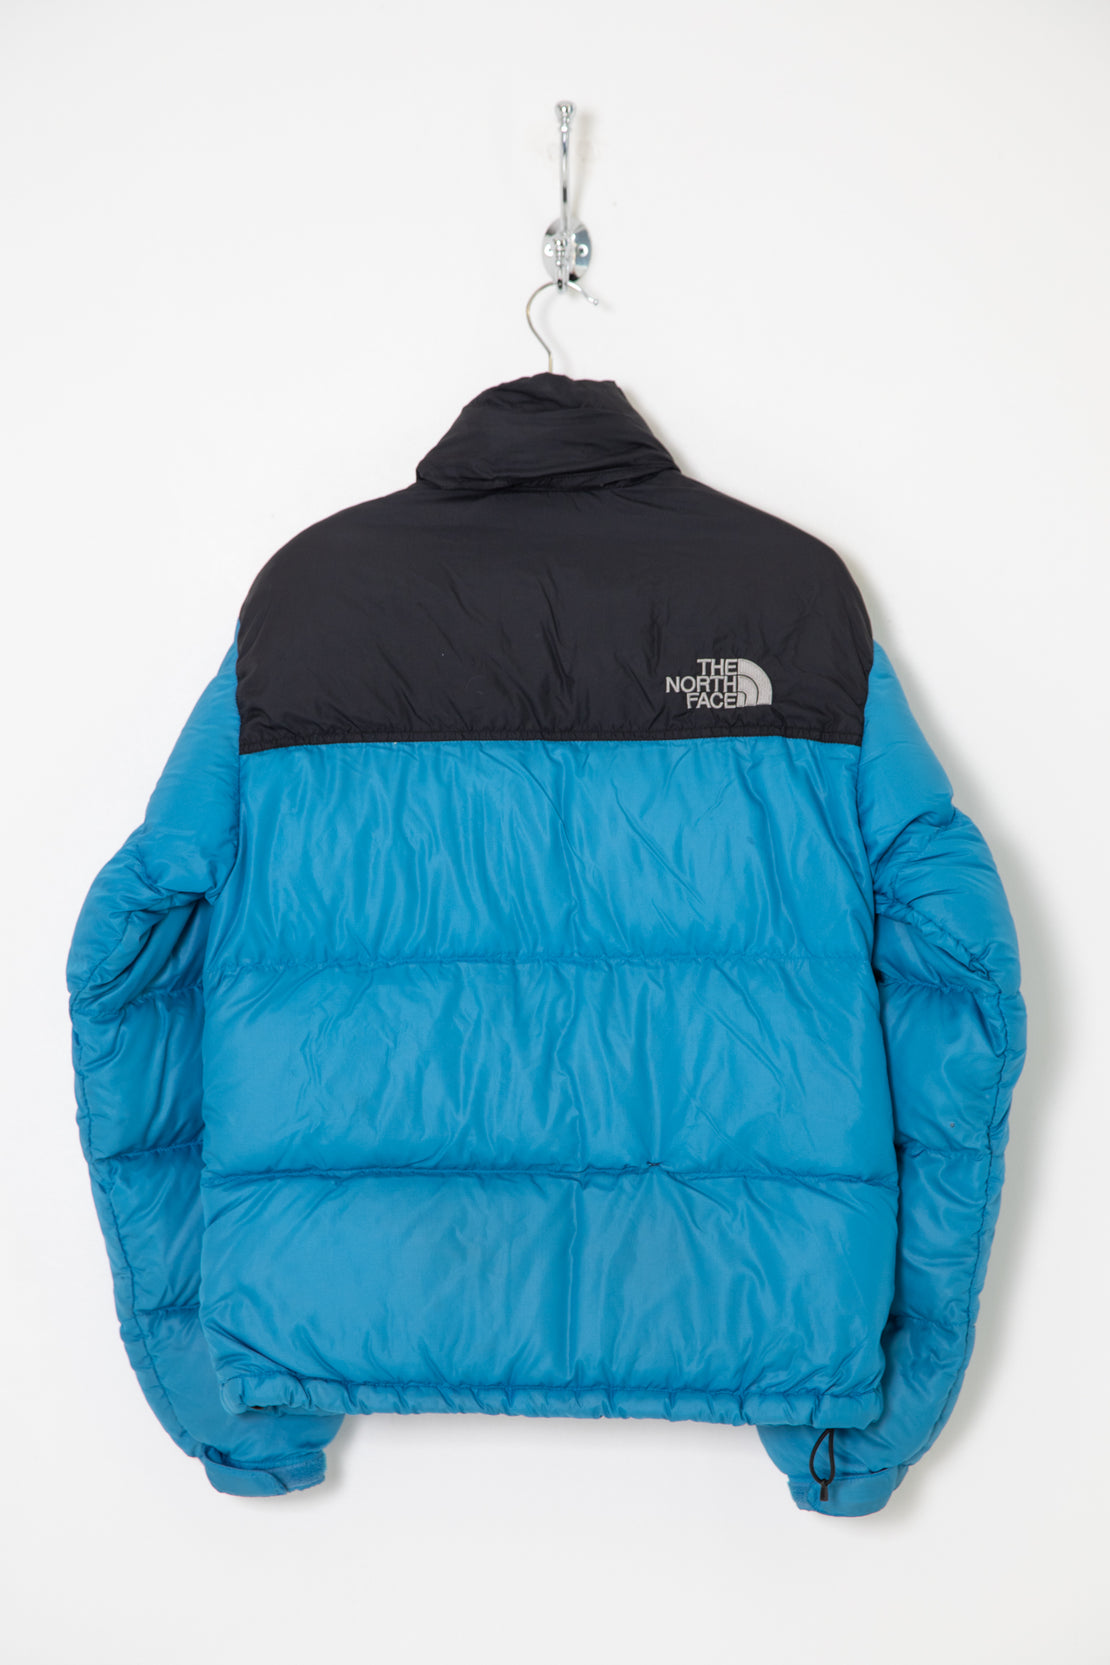 The North Face 700 Nuptse Puffer Jacket (XS)